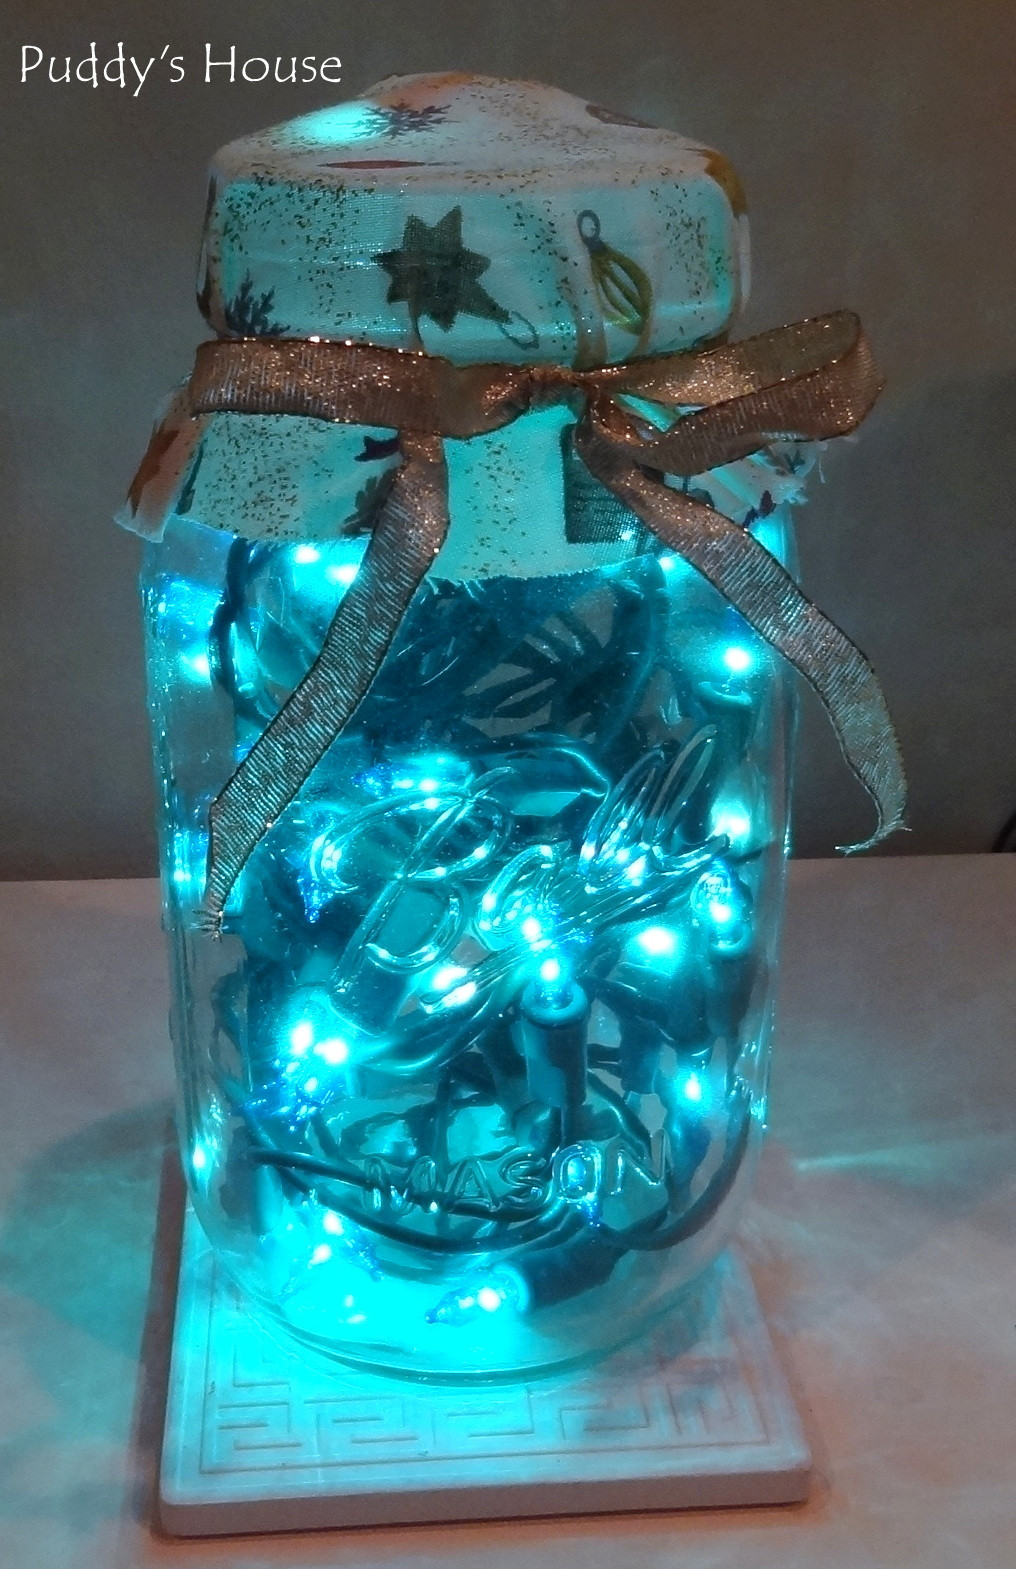 Best ideas about DIY Christmas Lights . Save or Pin DIY Christmas Decorations – Puddy s House Now.